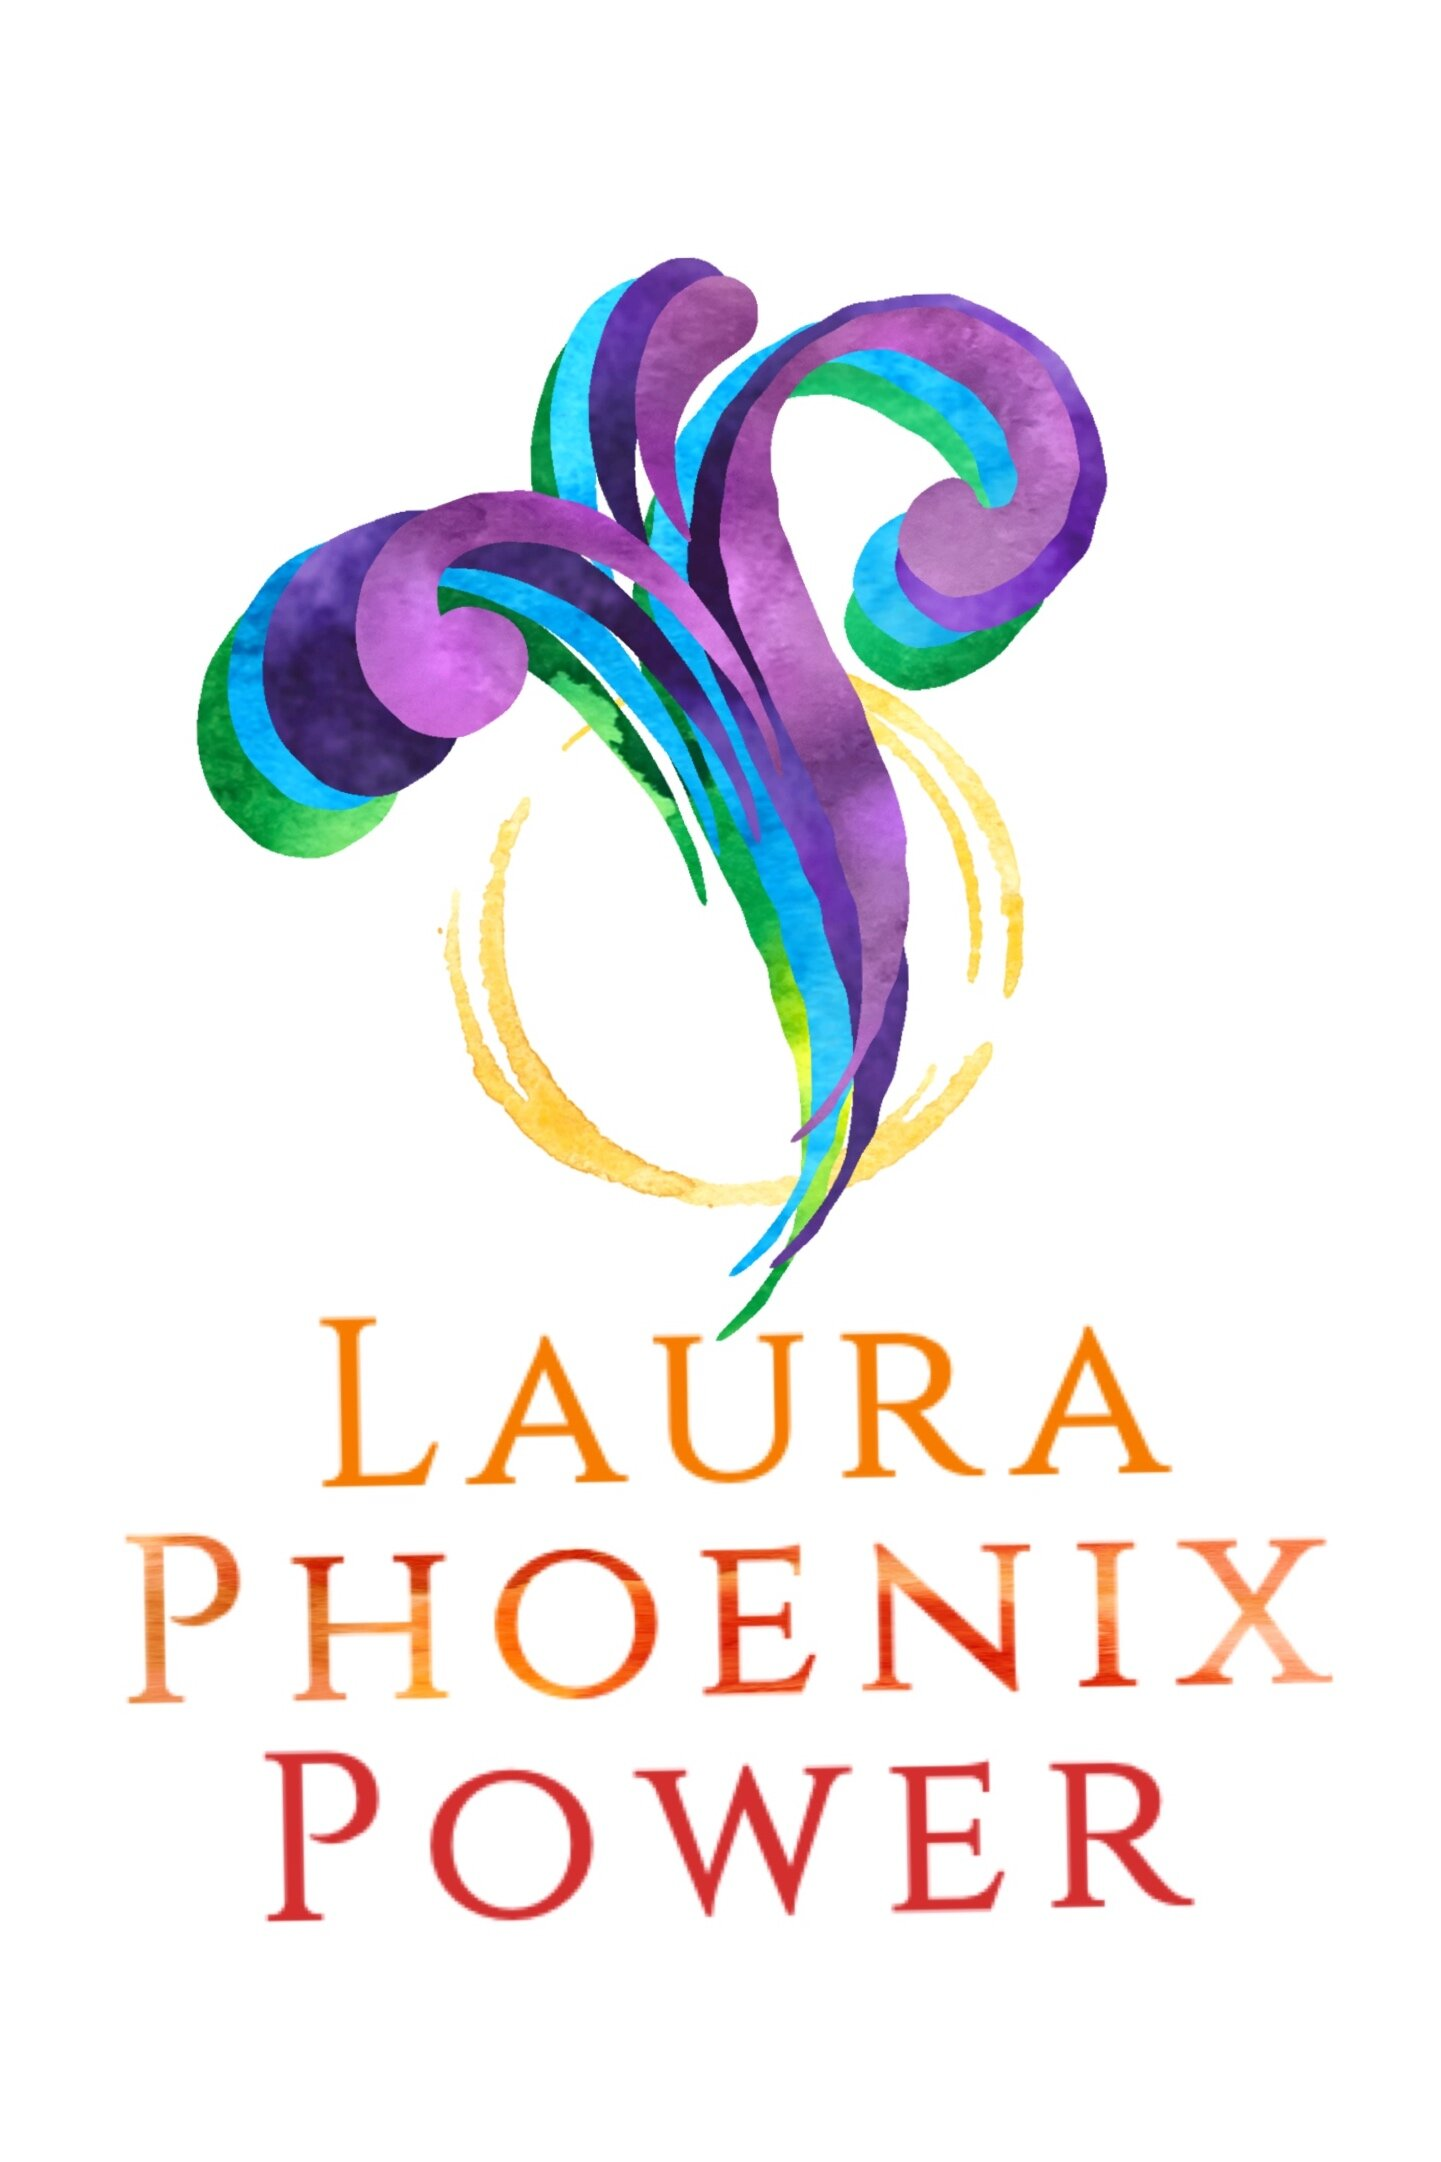 Laura Phoenix Power - Author - An Expression Of Love